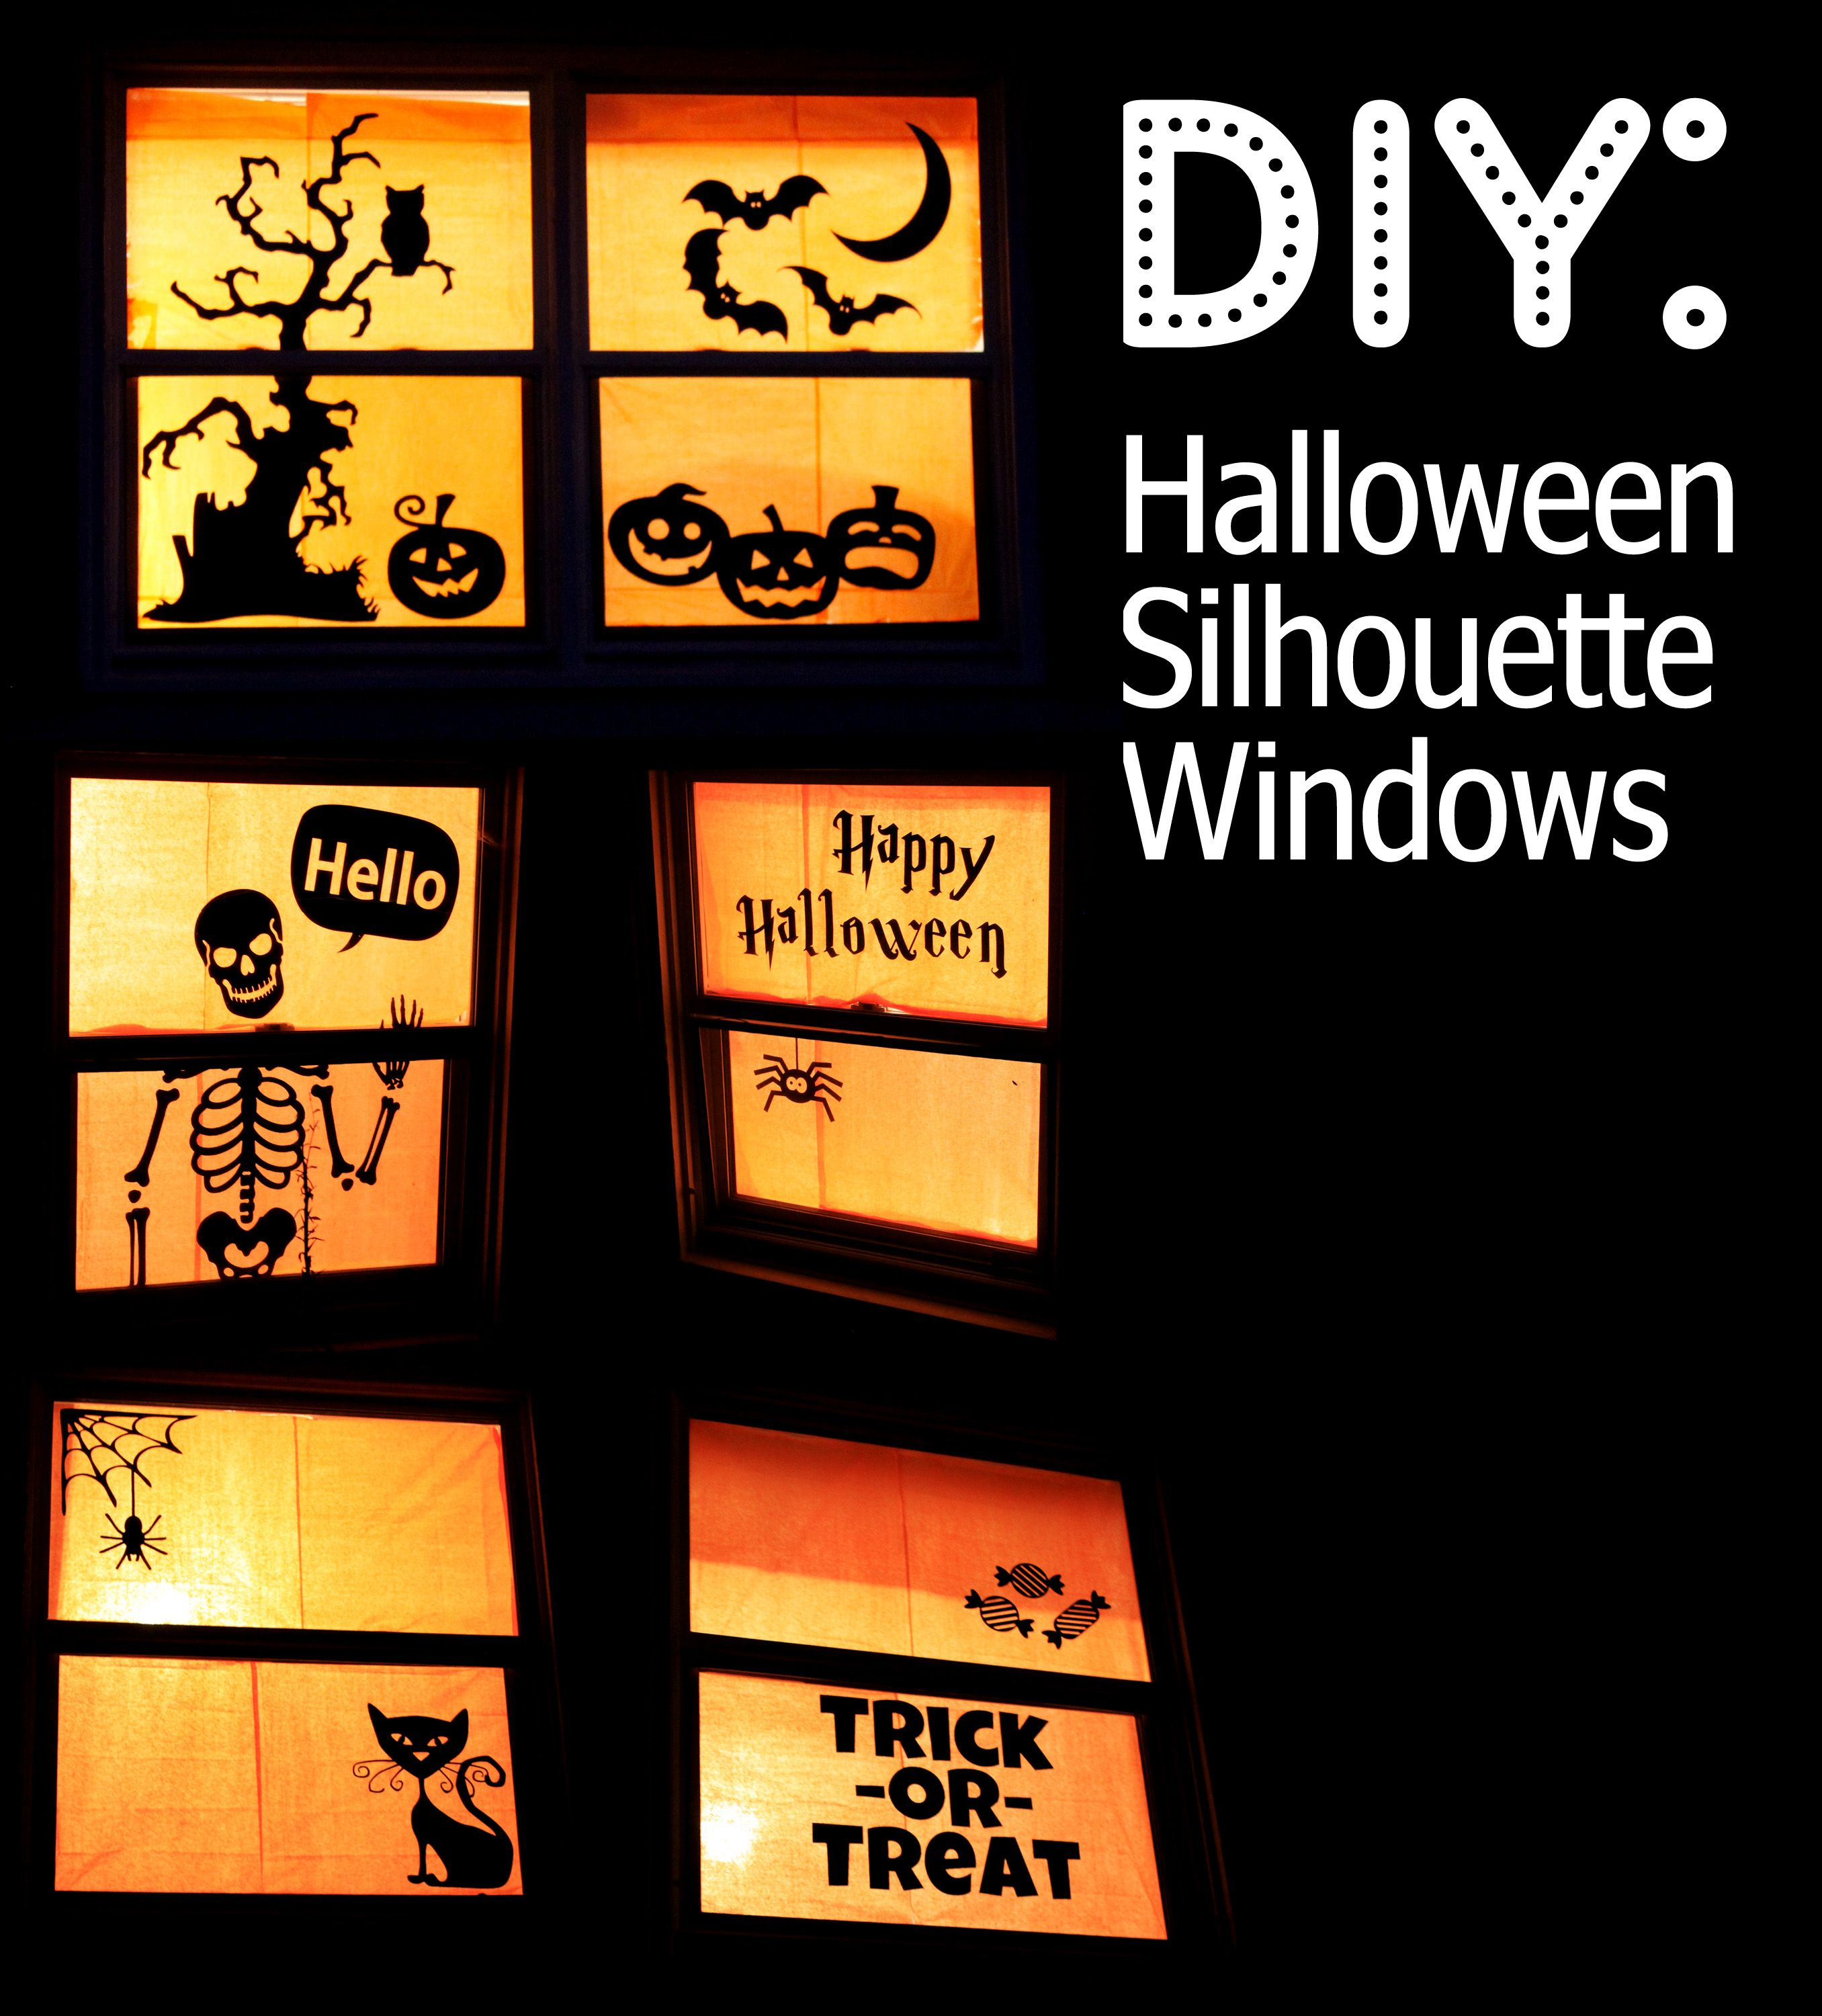 Vintage halloween window decorations - Diy Halloween Window Silhouettes Takes Around And Less Than To Decorate The Inside And Outside Of Your Home